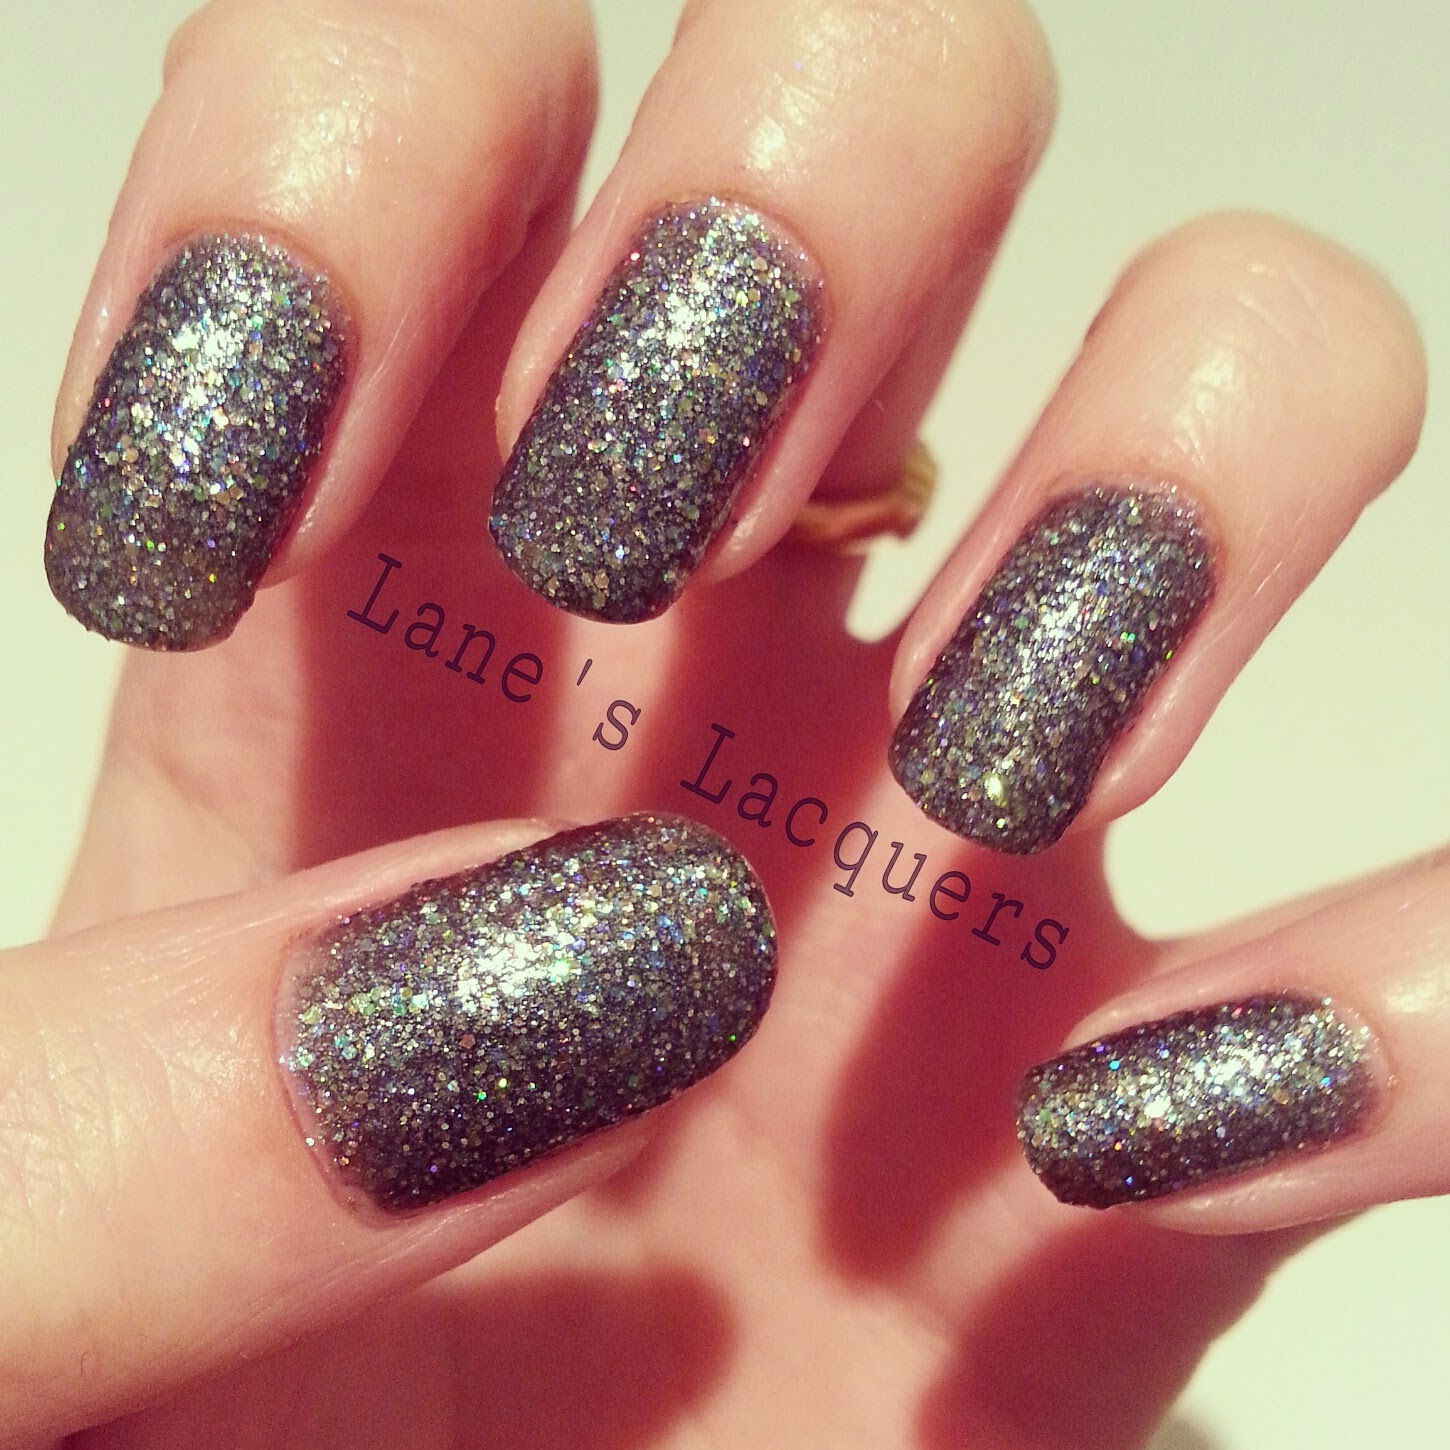 new-barry-m-glitterati-rockstar-swatch-manicure